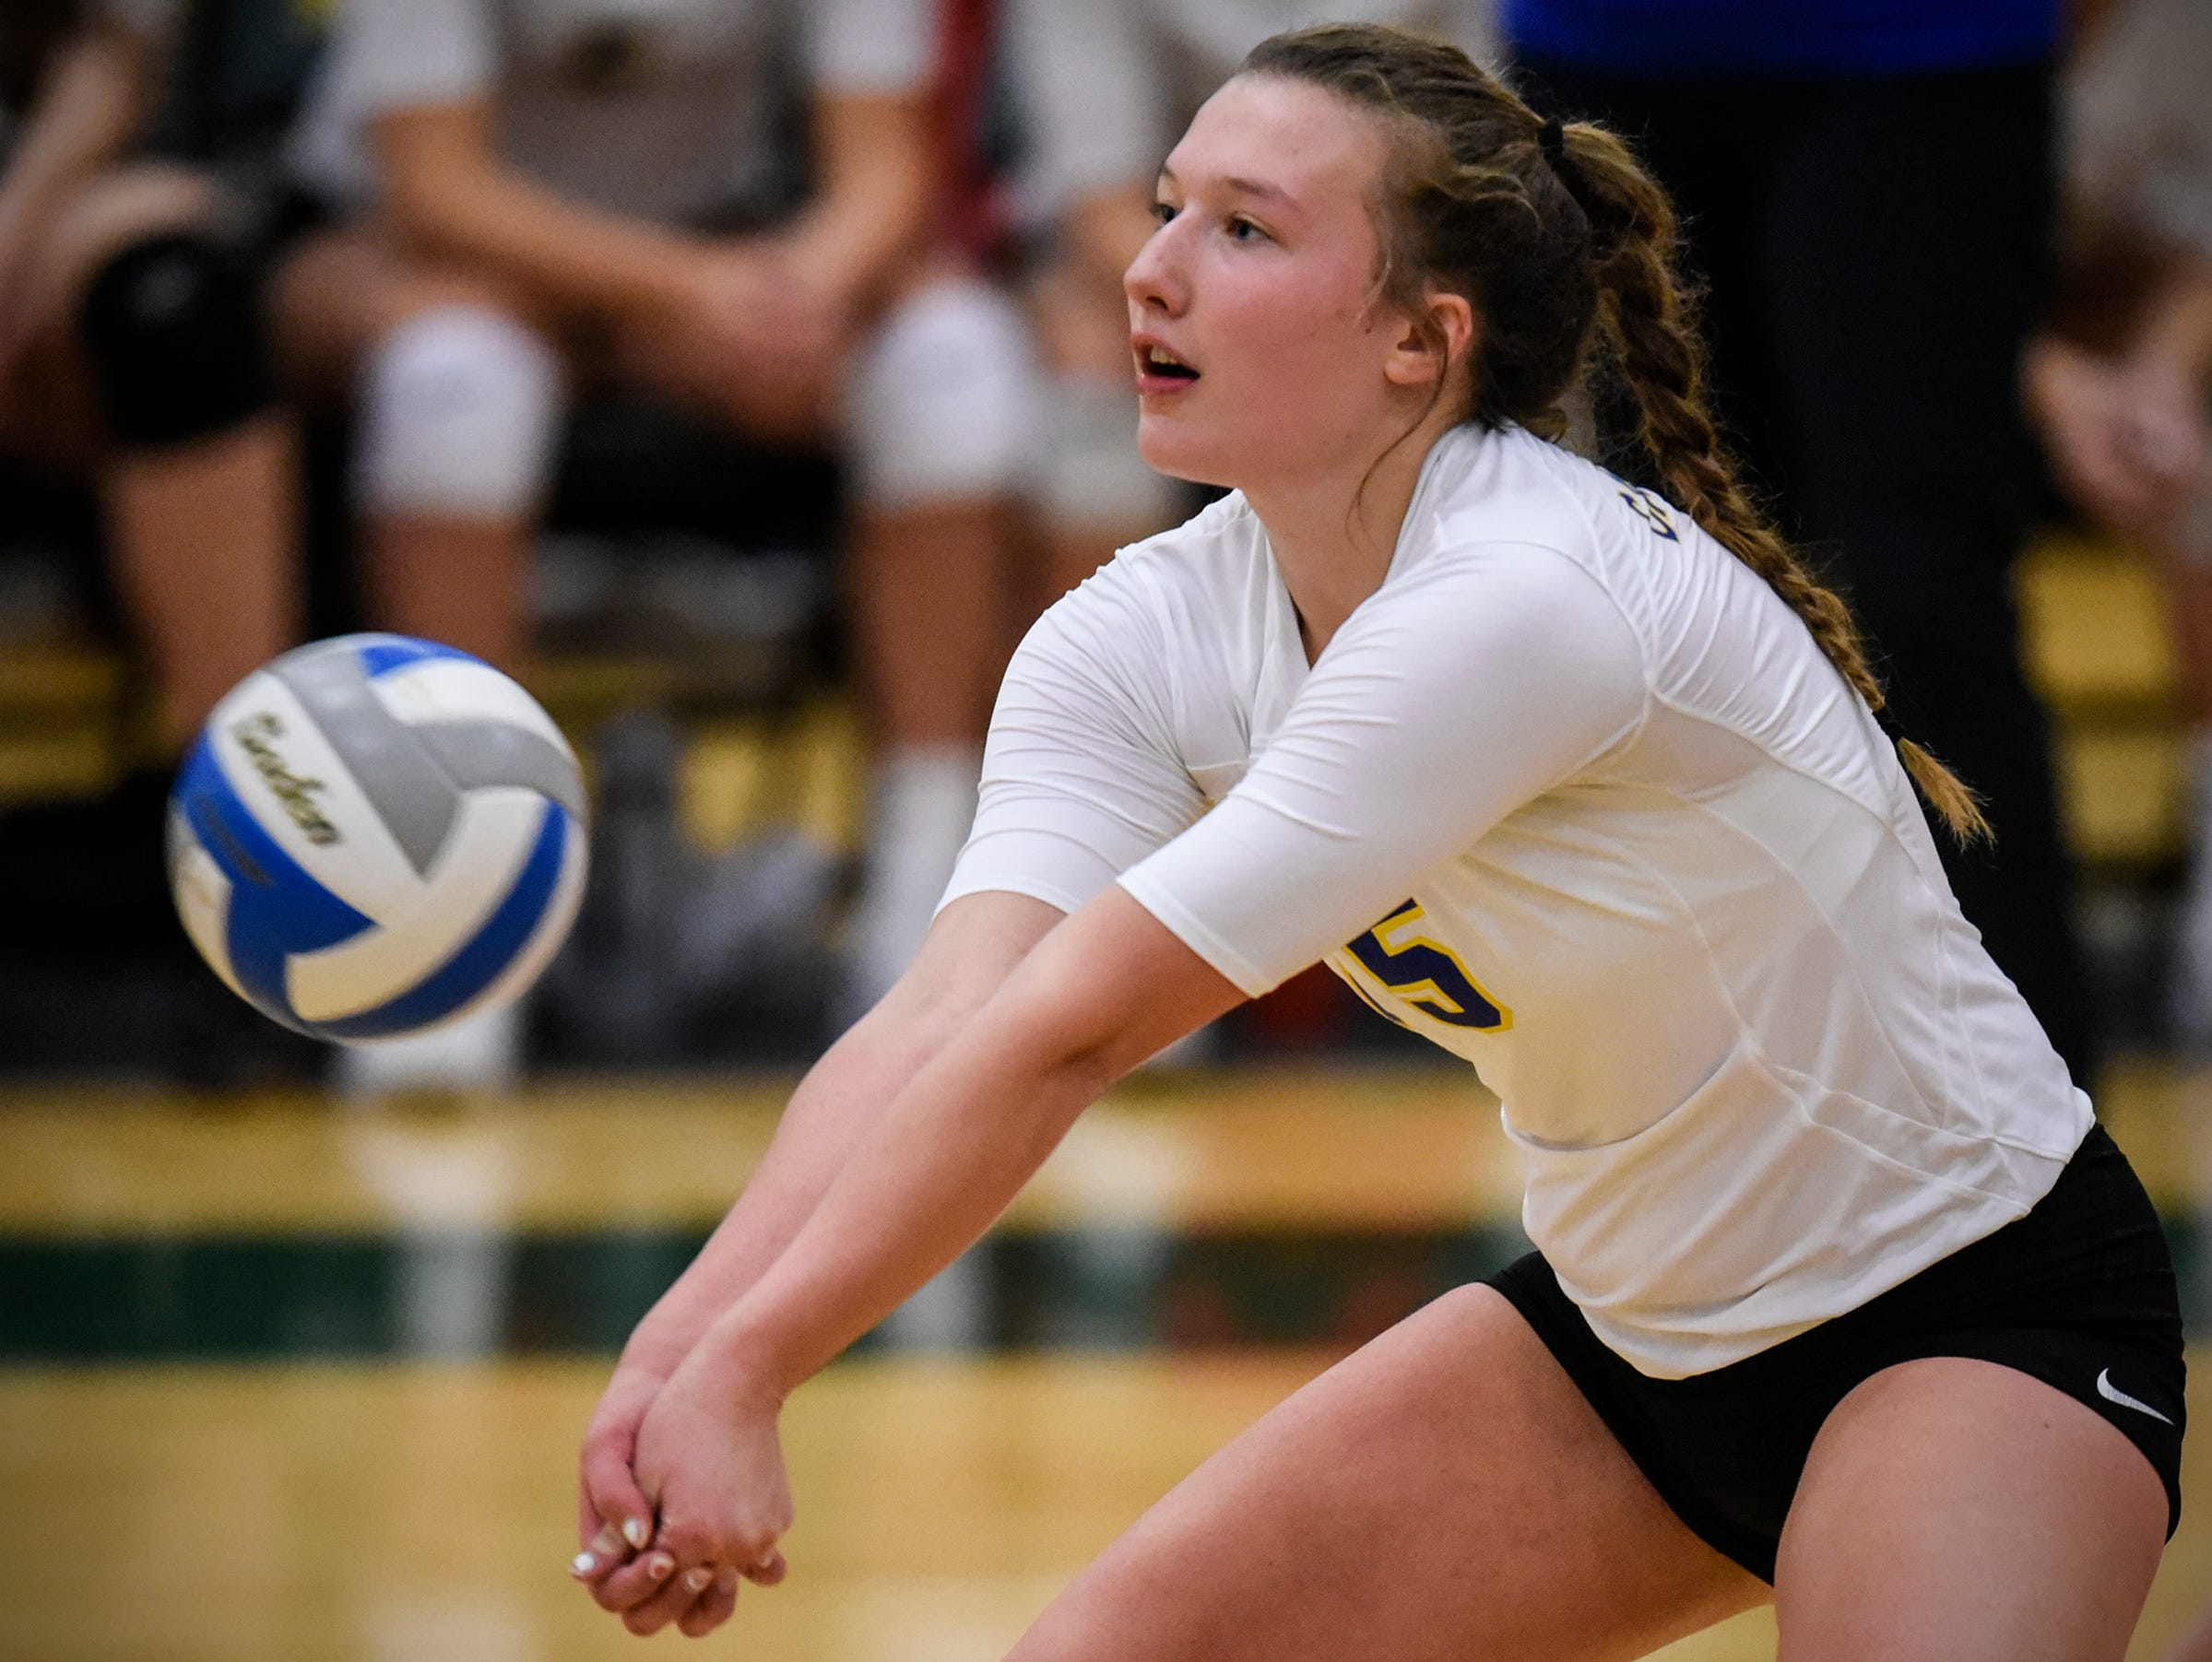 Gabby Heying concentrates on the ball during the Section 6-2A volleyball semifinals Thursday, Nov. 1, at Sauk Rapids-Rice High School.